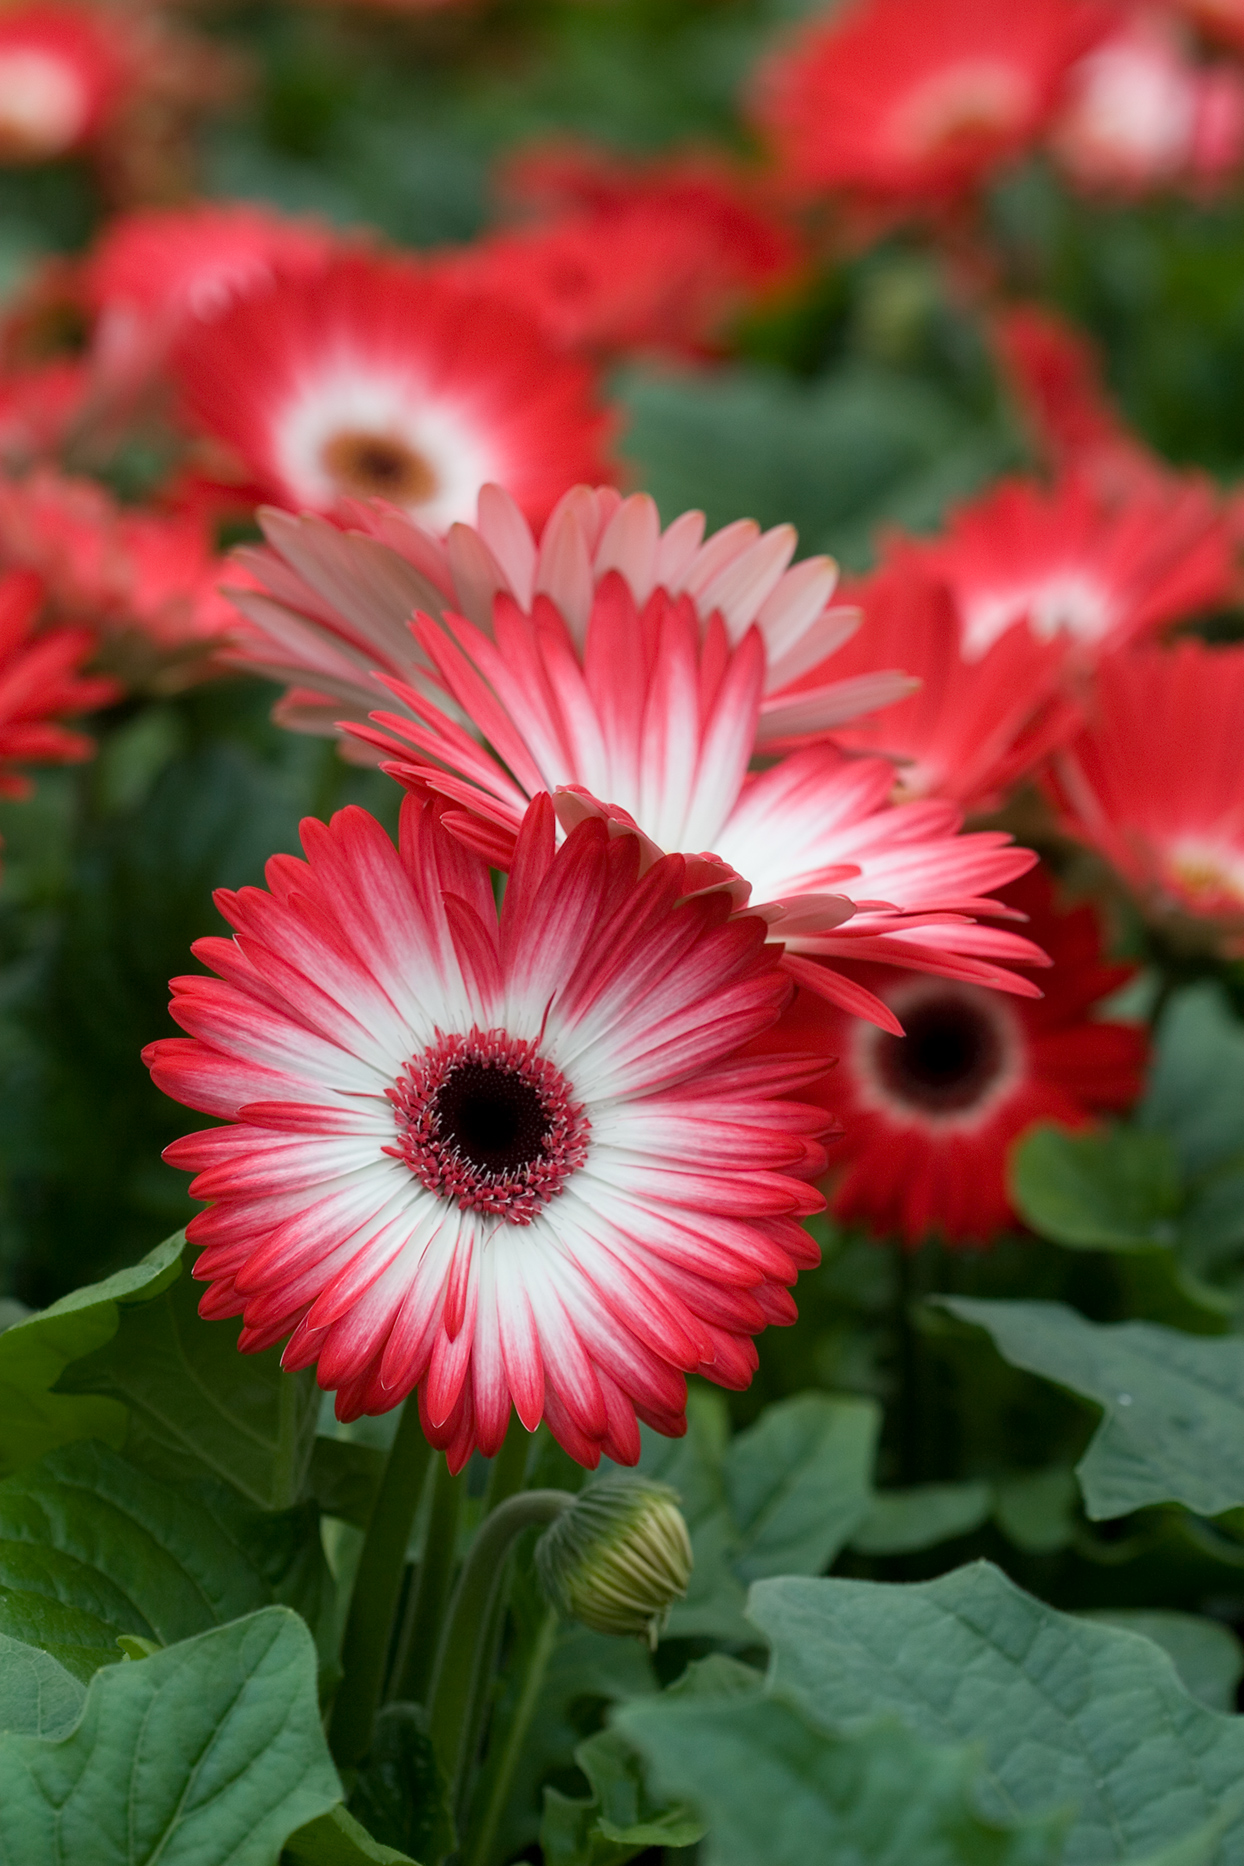 red gerbera daisies with white centers